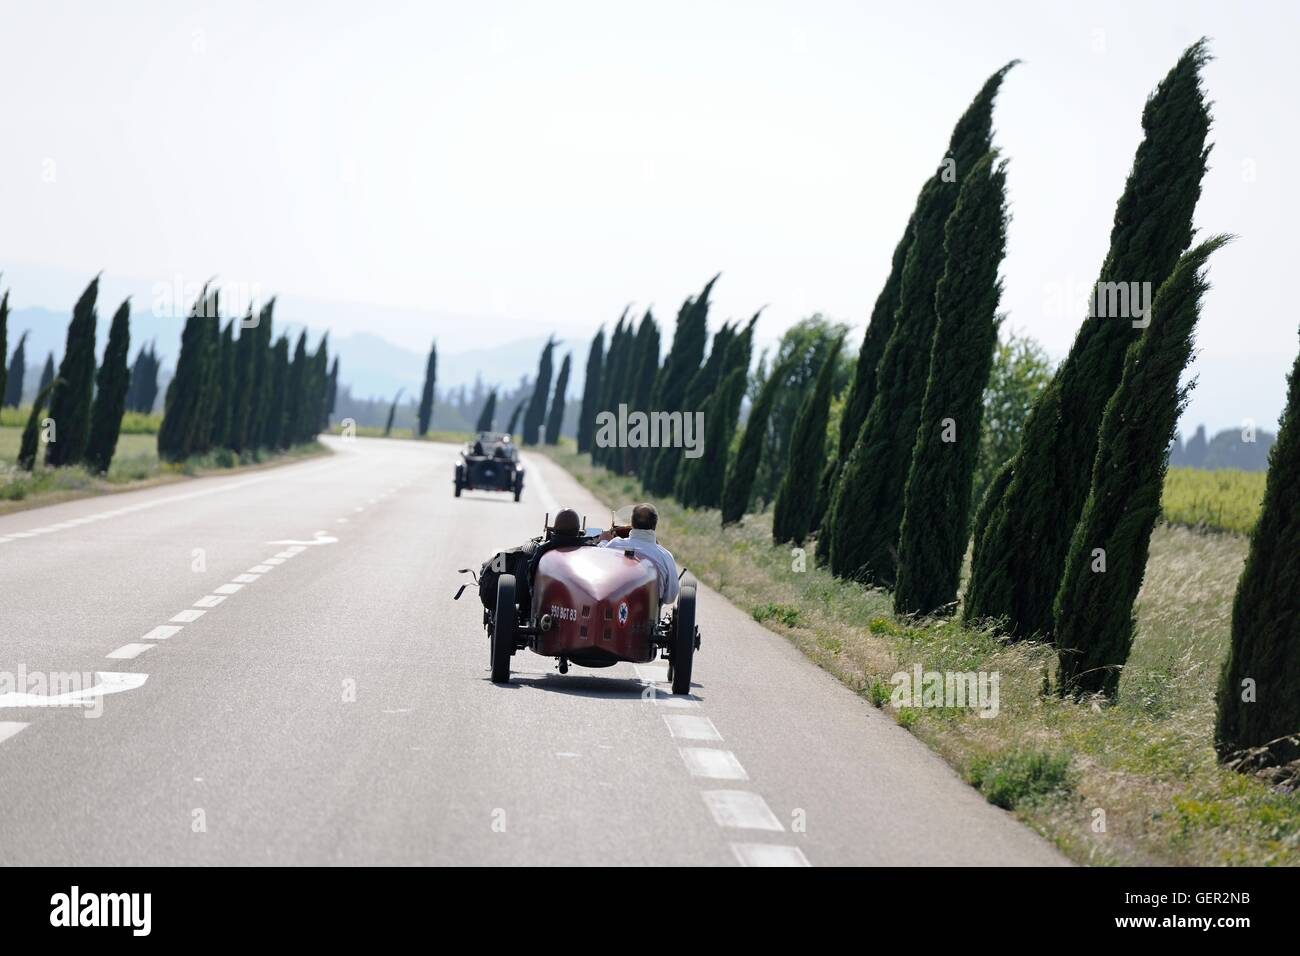 Bugatti speeding down a French road on a windy day during a classic car rally Stock Photo